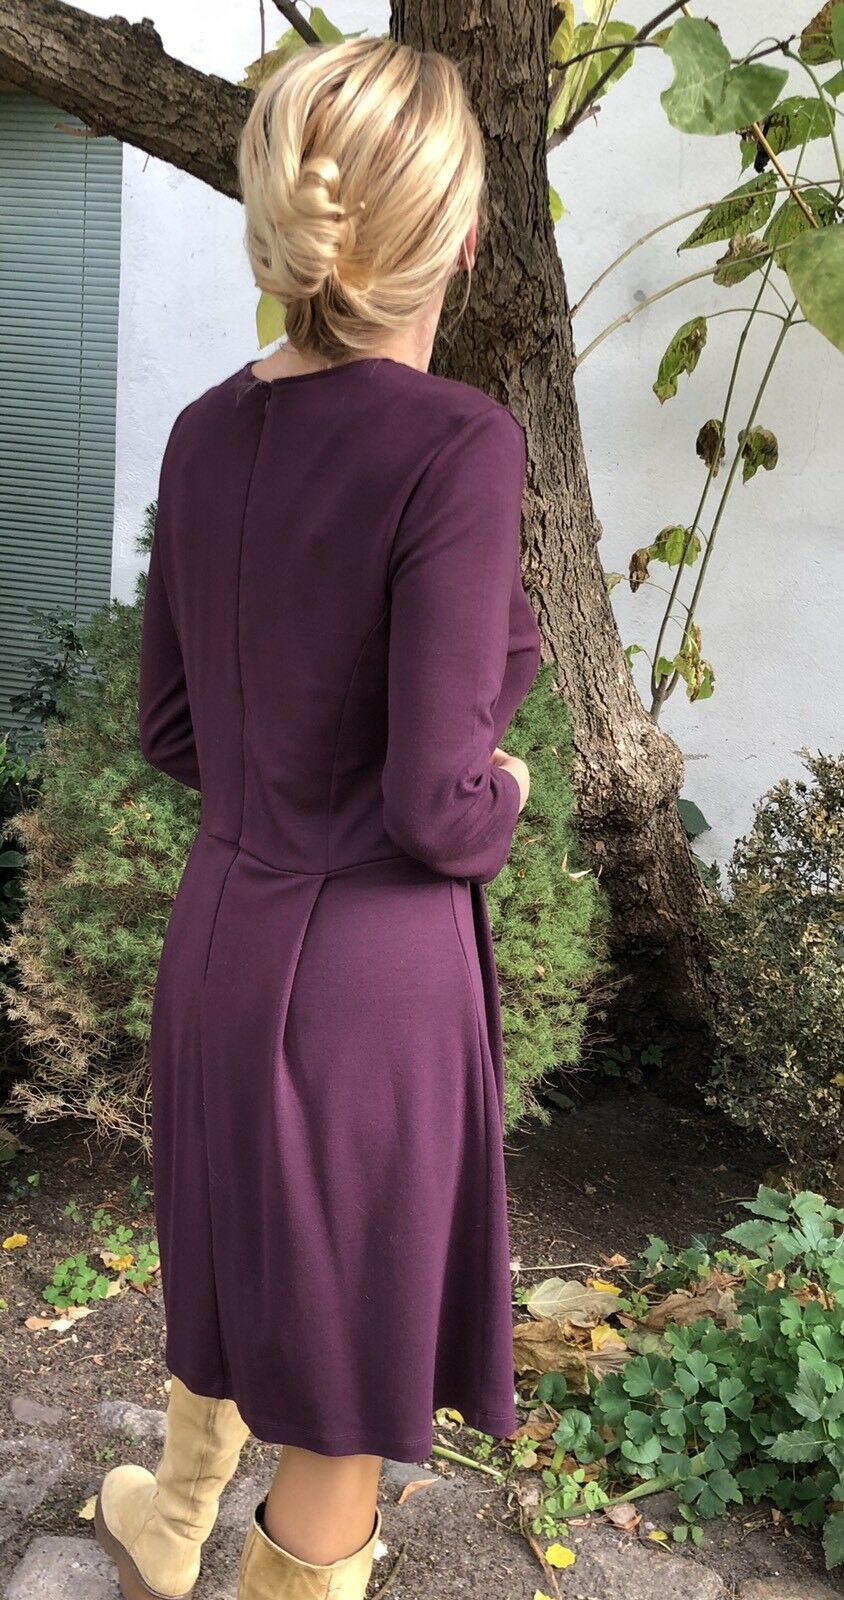 French Connection Classic Kleid Gr UK12 aubergine lila knielang Viscose